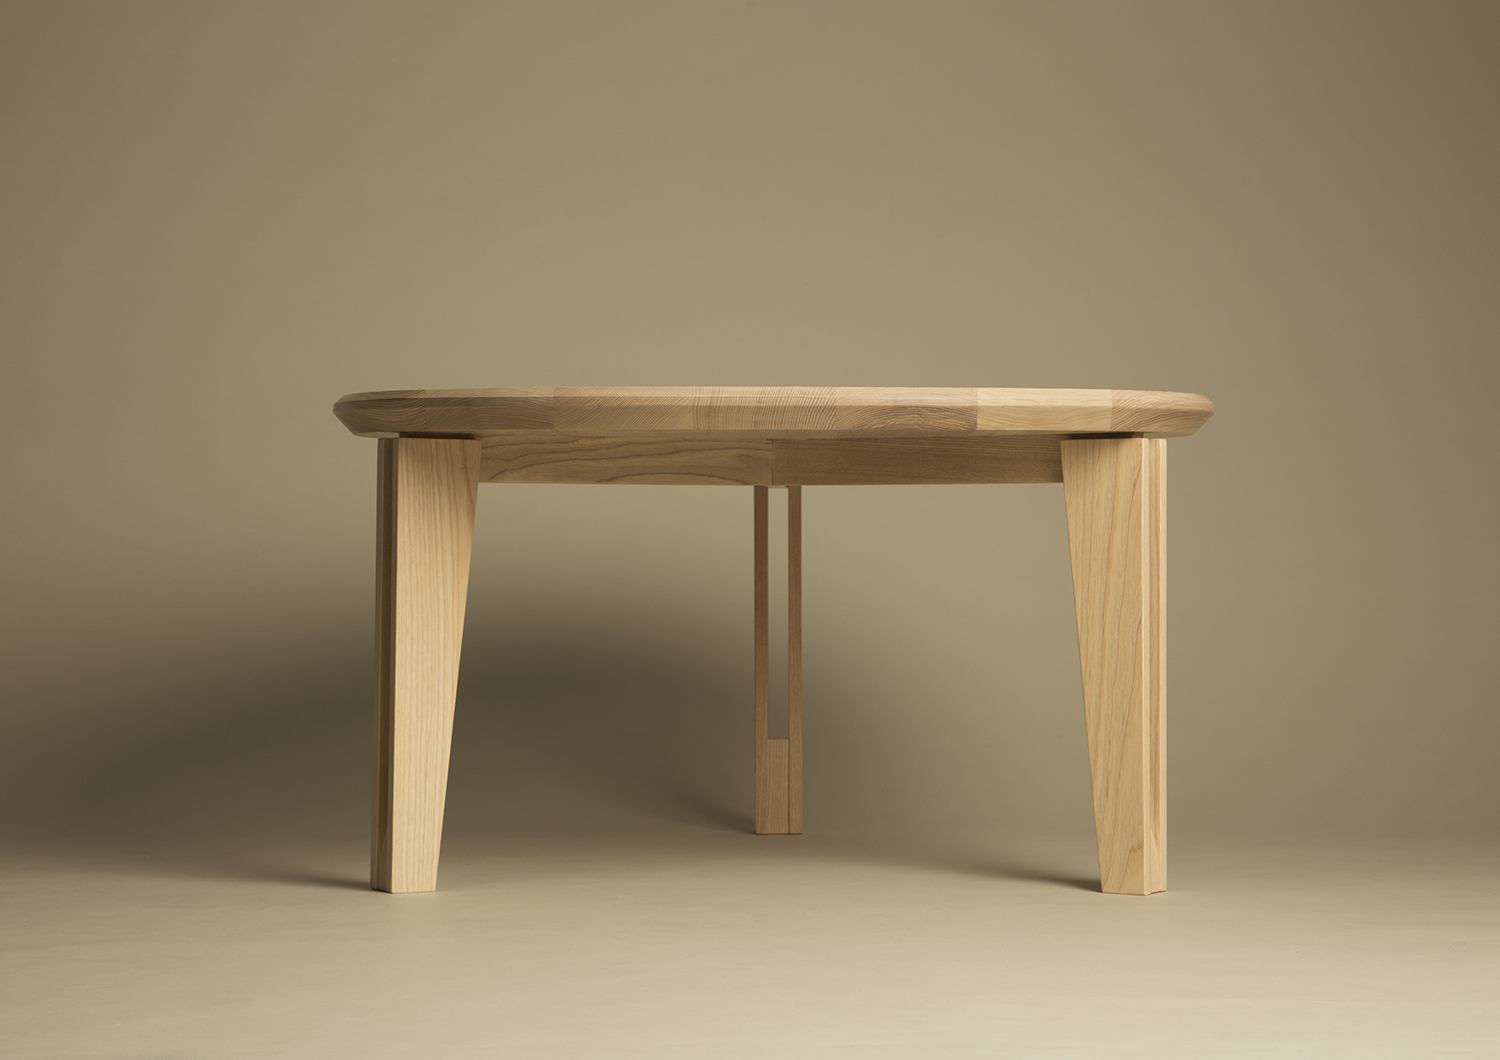 Brace Coffee Table by Alan Flannery Furniture Design L9.jpg